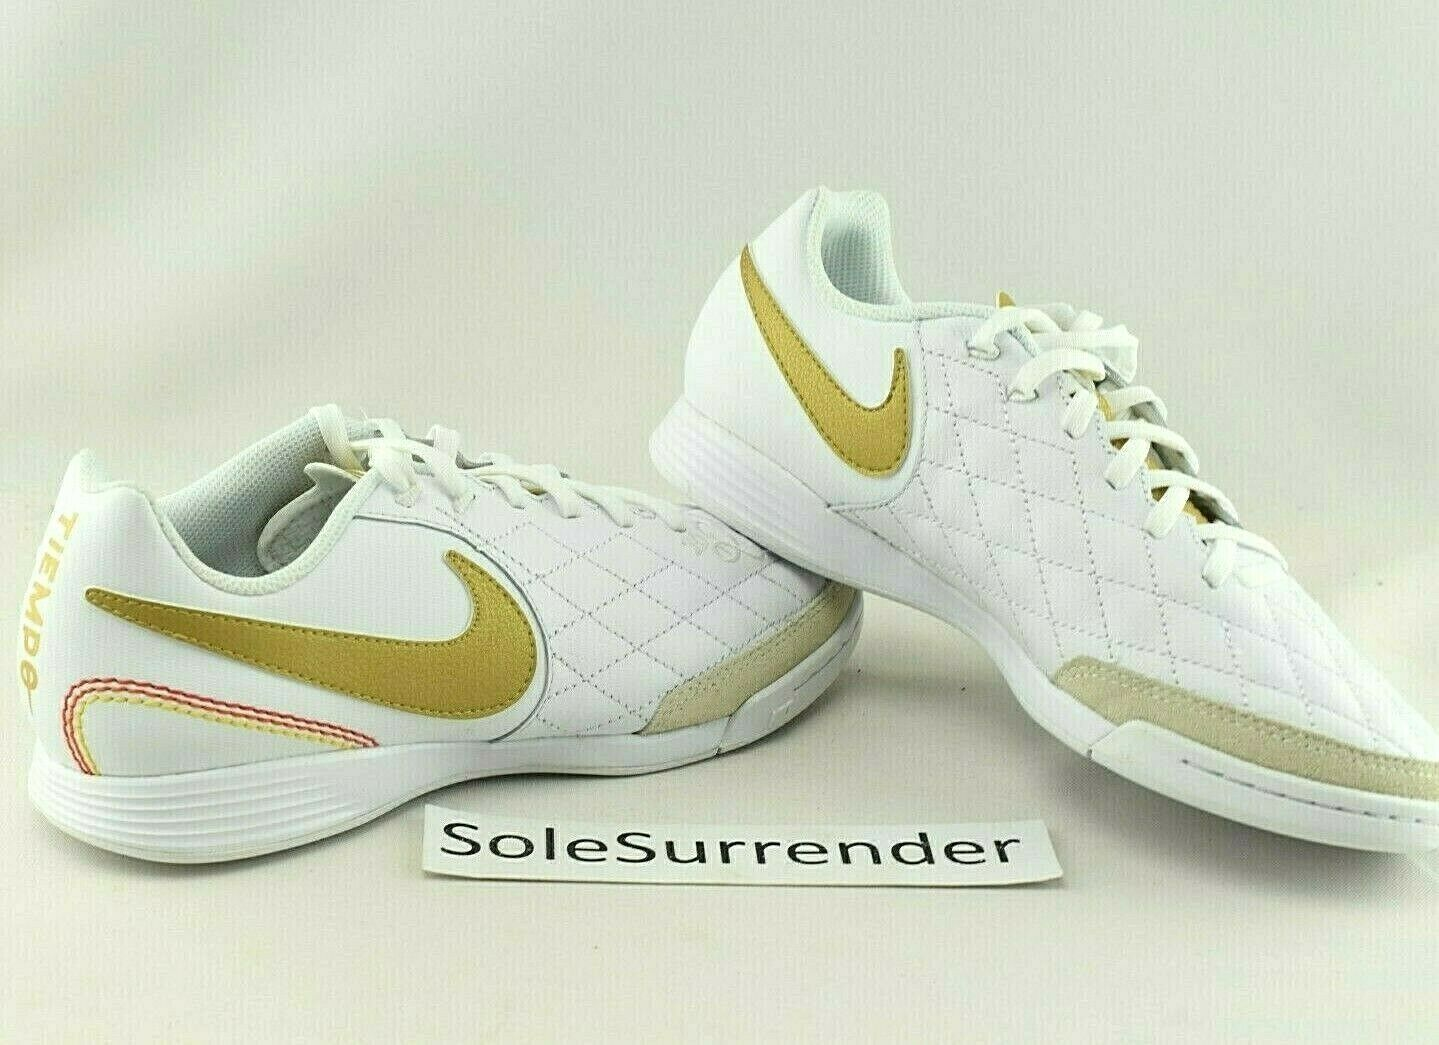 0f2d3bc38d Nike Legend 7 10R IC - CHOOSE SIZE - AQ2217-171 Ronaldinho gold Football  Academy ntisaf4831-Athletic Shoes